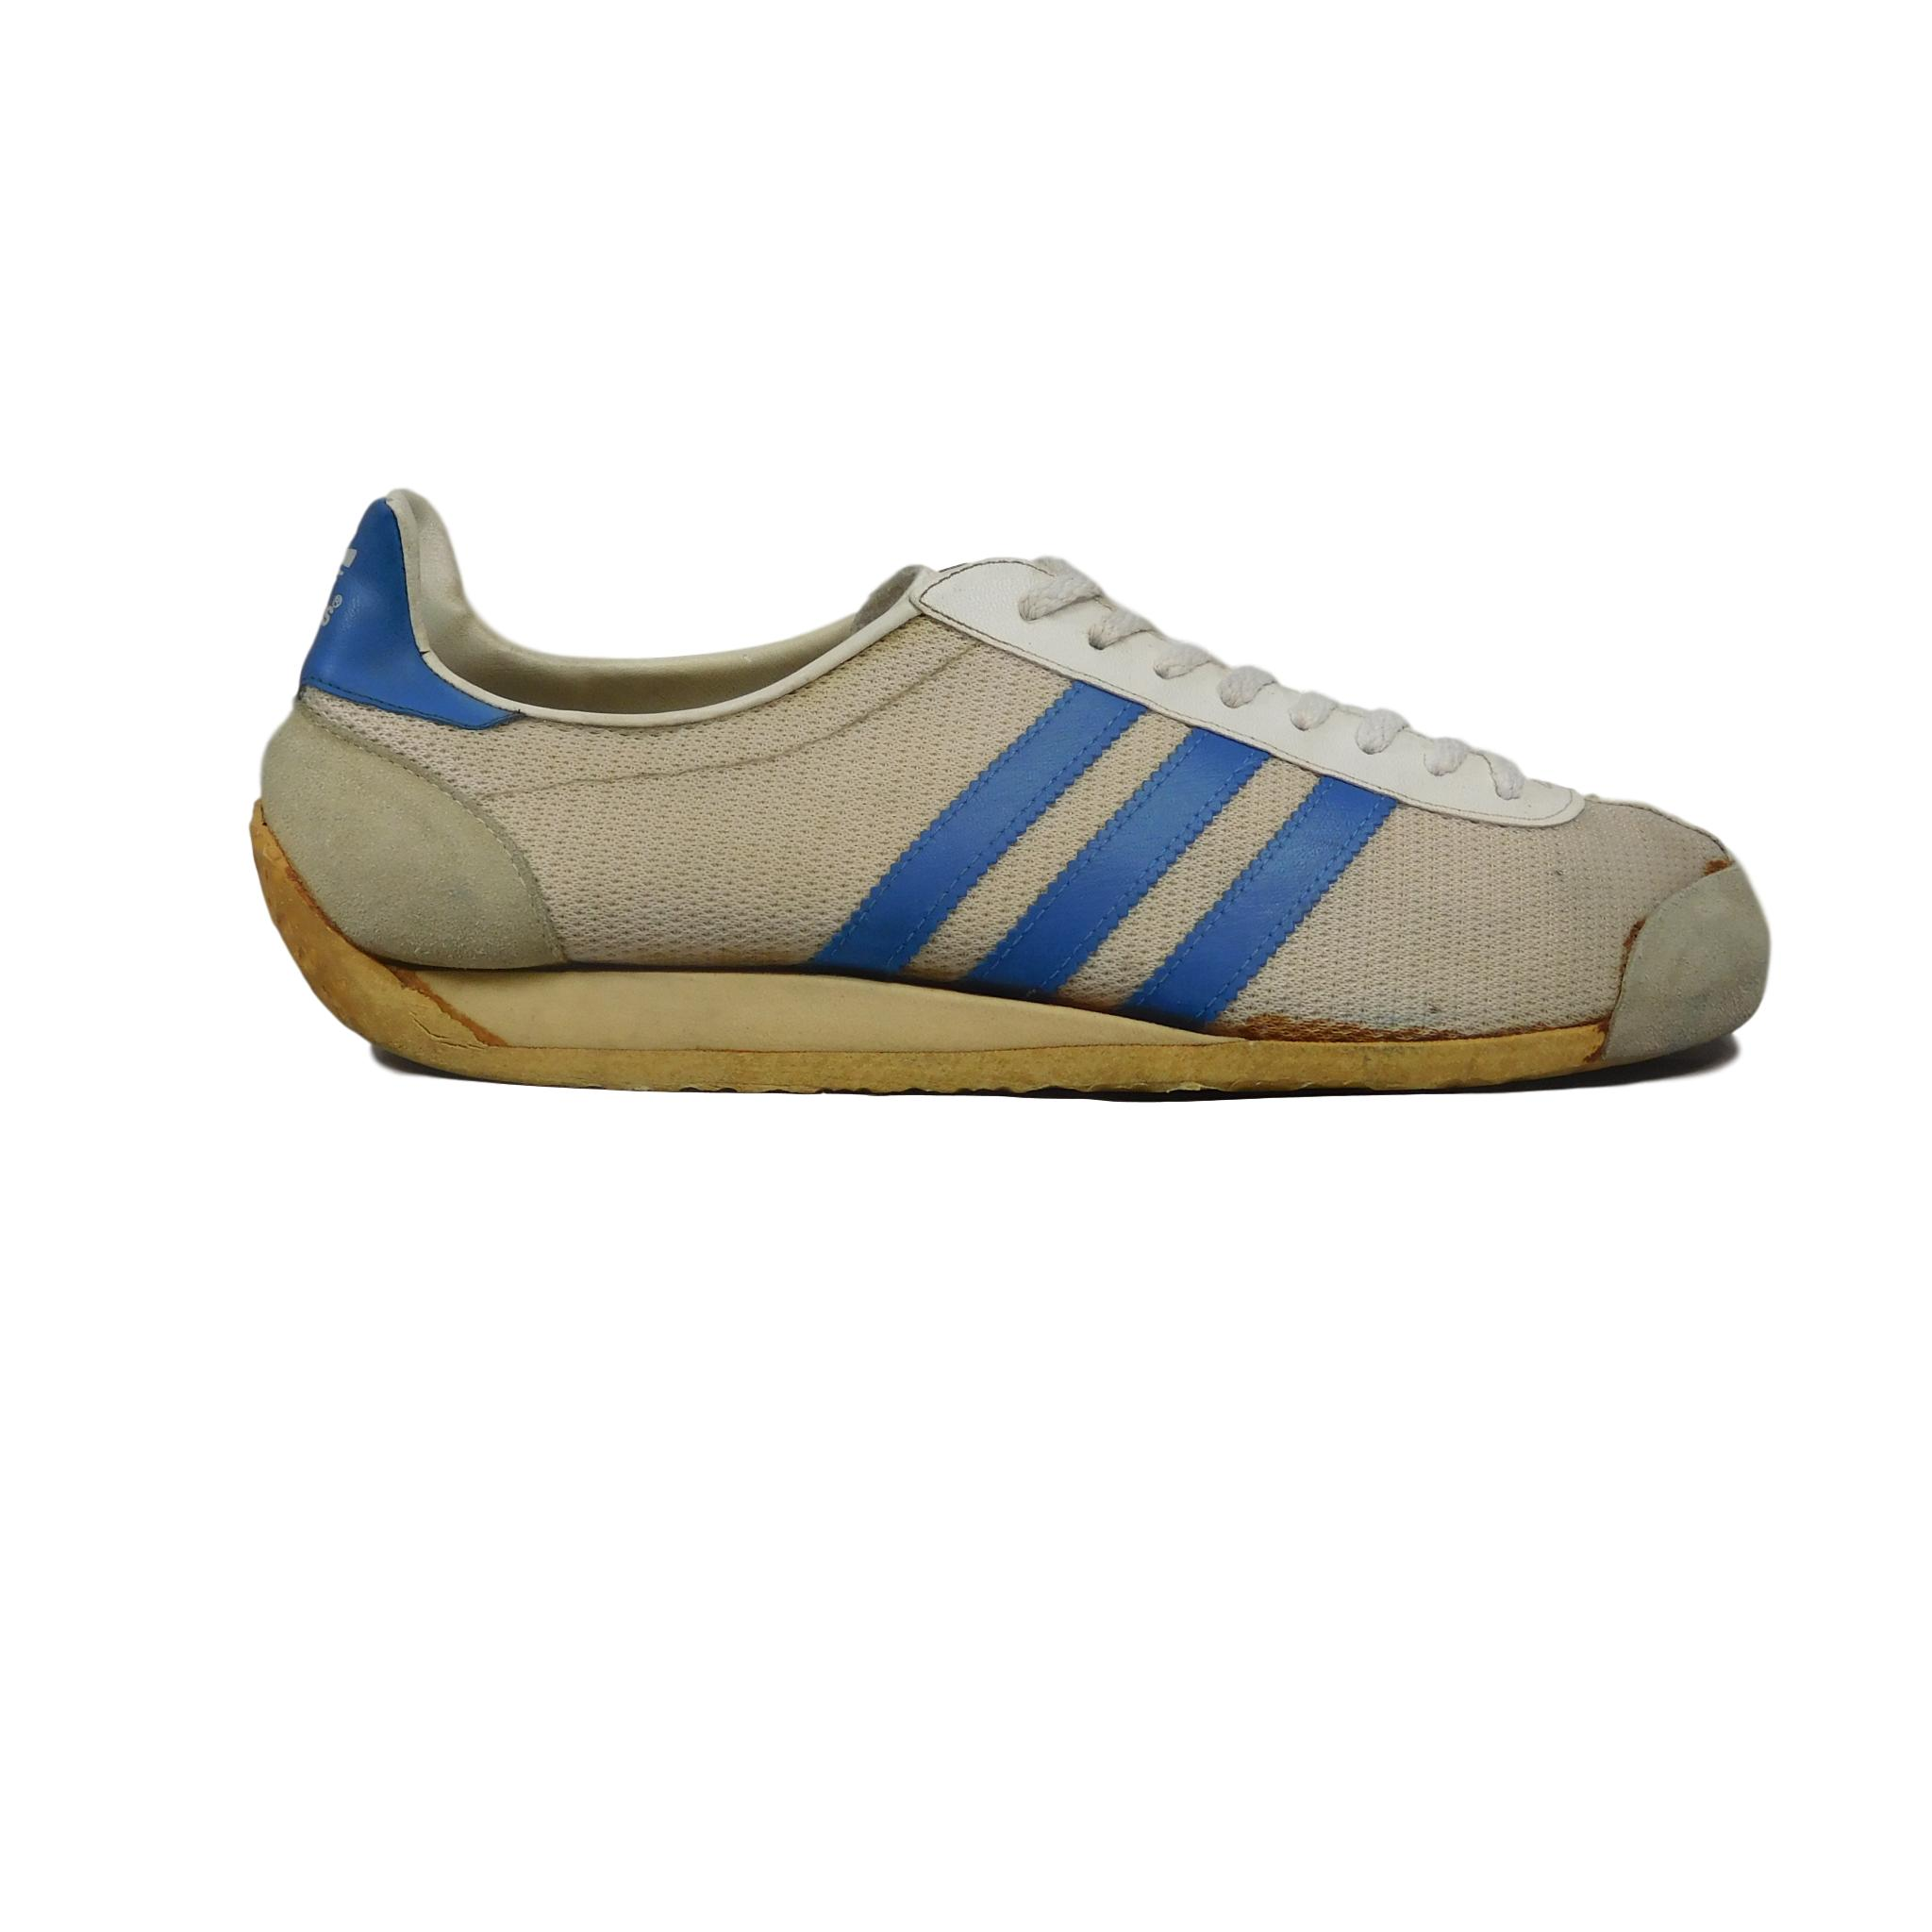 pas cher pour réduction b75cb ee2e8 adidas Fencing - Made in West Germany